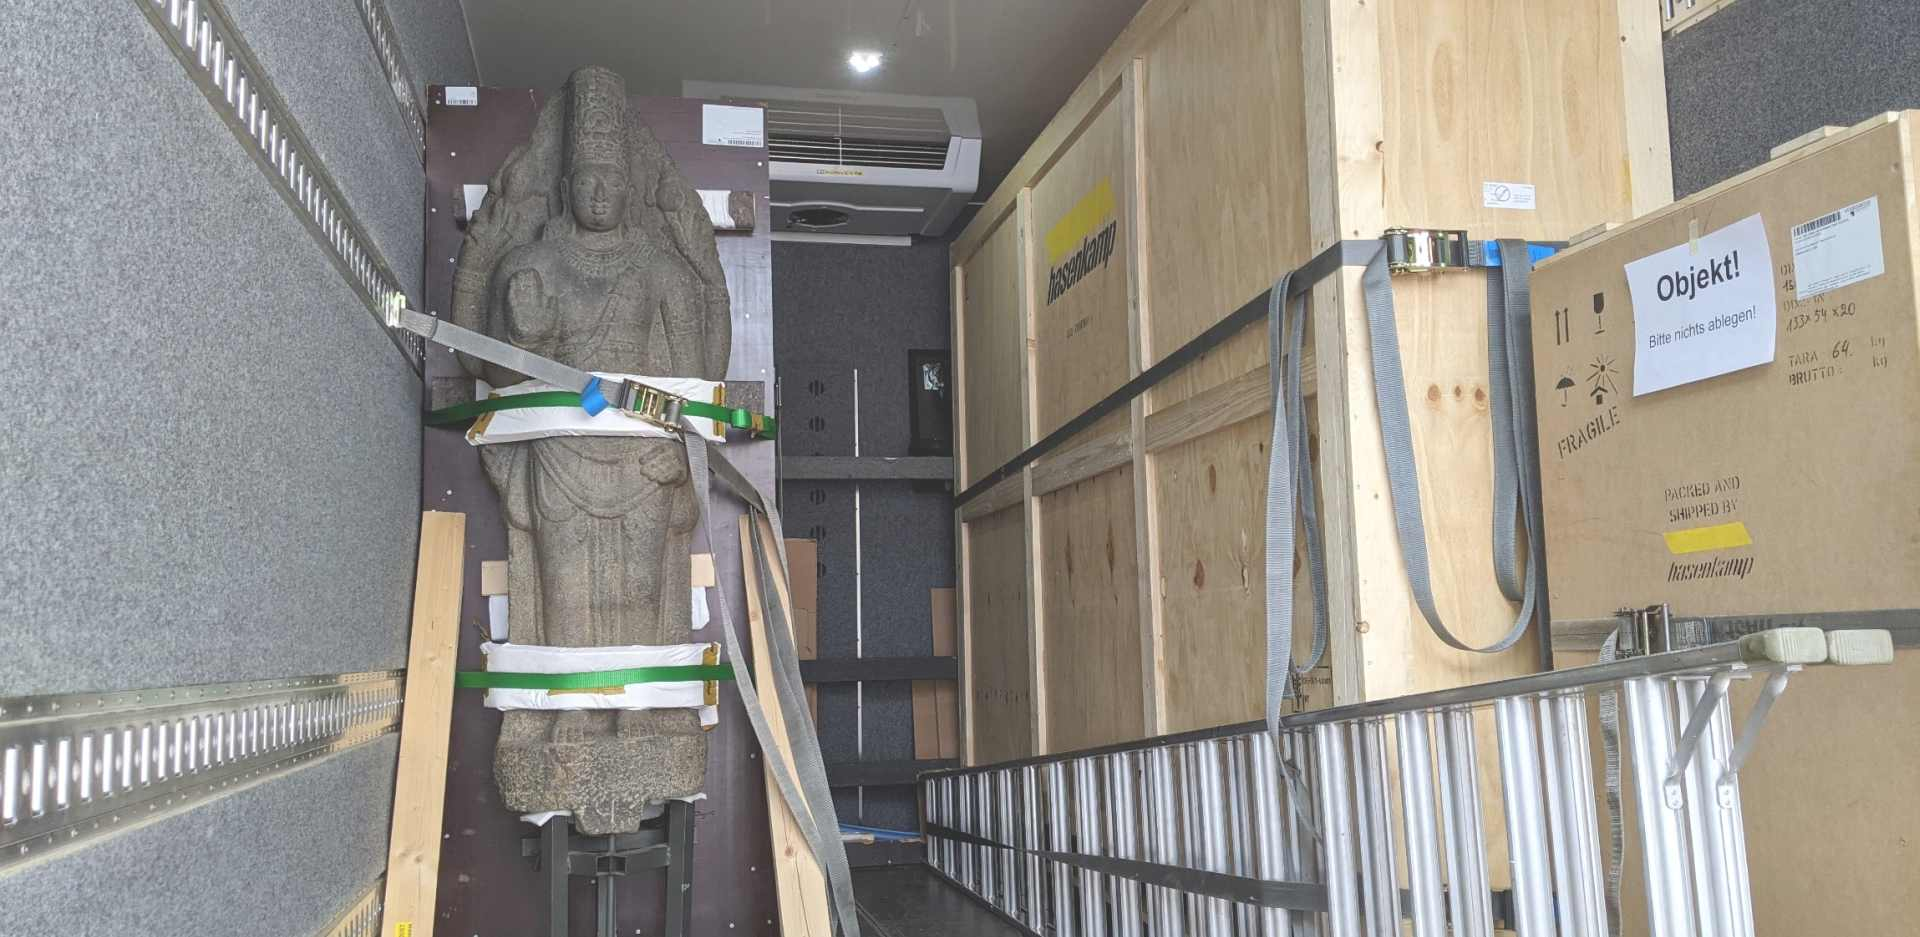 The statue of the Hindu god Vishnu (South India, 8th/9th century AD) from the collection of the Museum für Asiatische Kunst is transported from Berlin-Dahlem to the Humboldt Forum